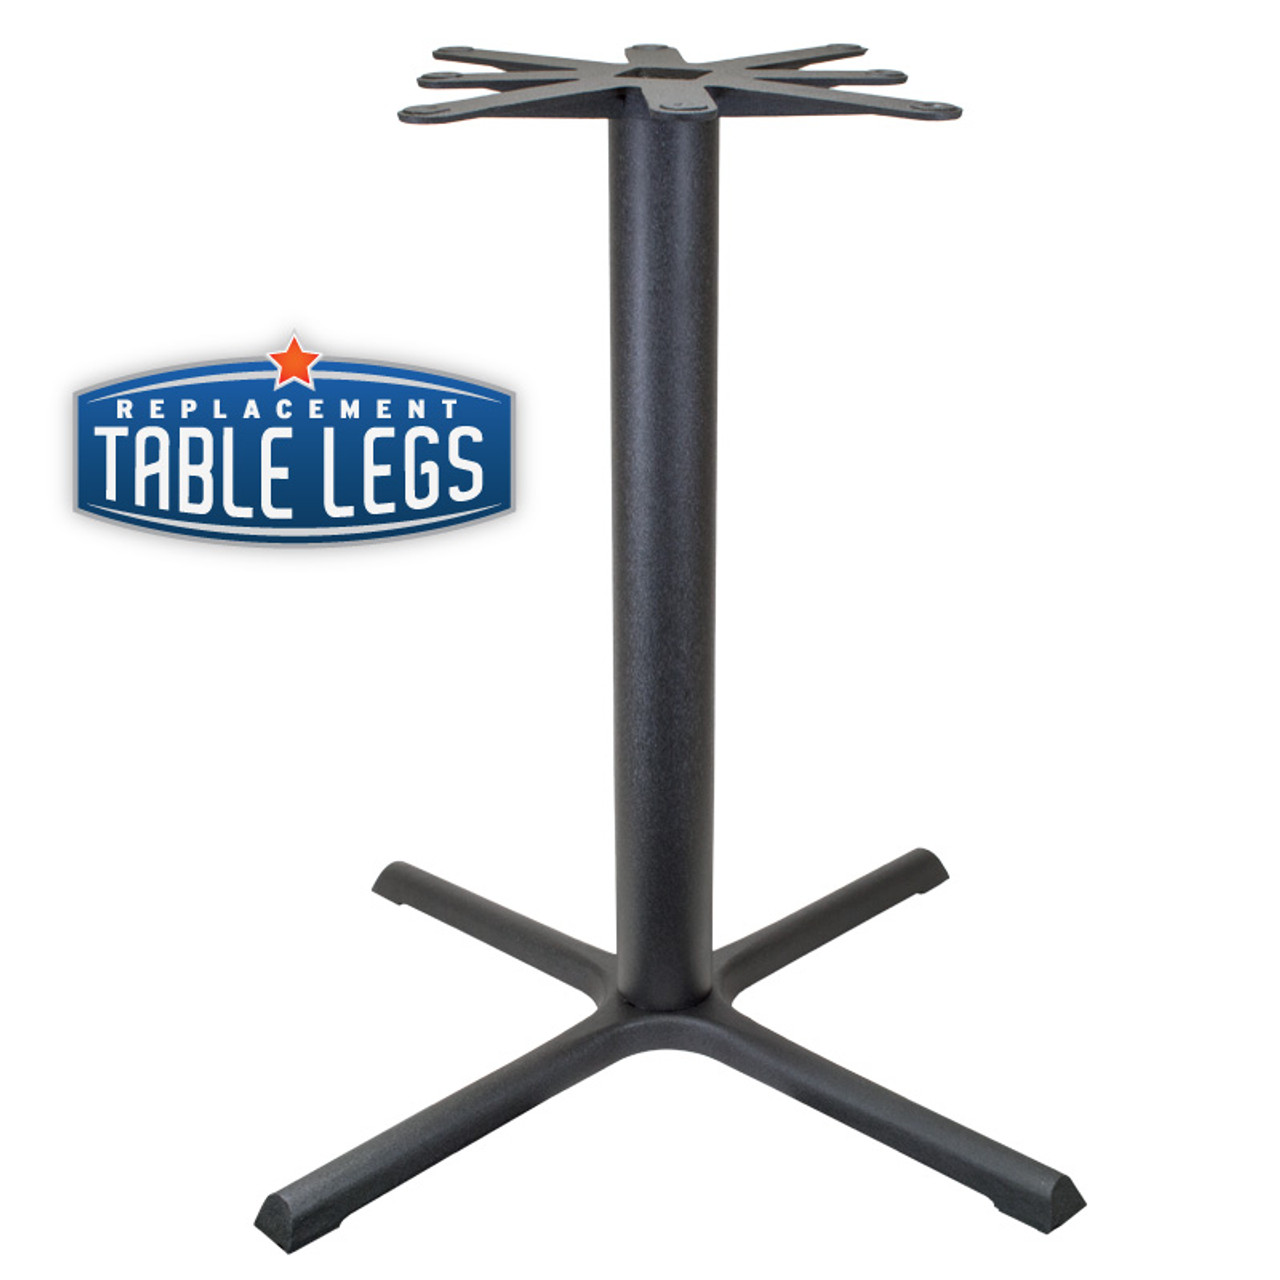 "CAST IRON TABLE BASE, X Style 40""x40"", 40-1/4"" height, 4"" diameter steel column - replacementtablelegs.com"